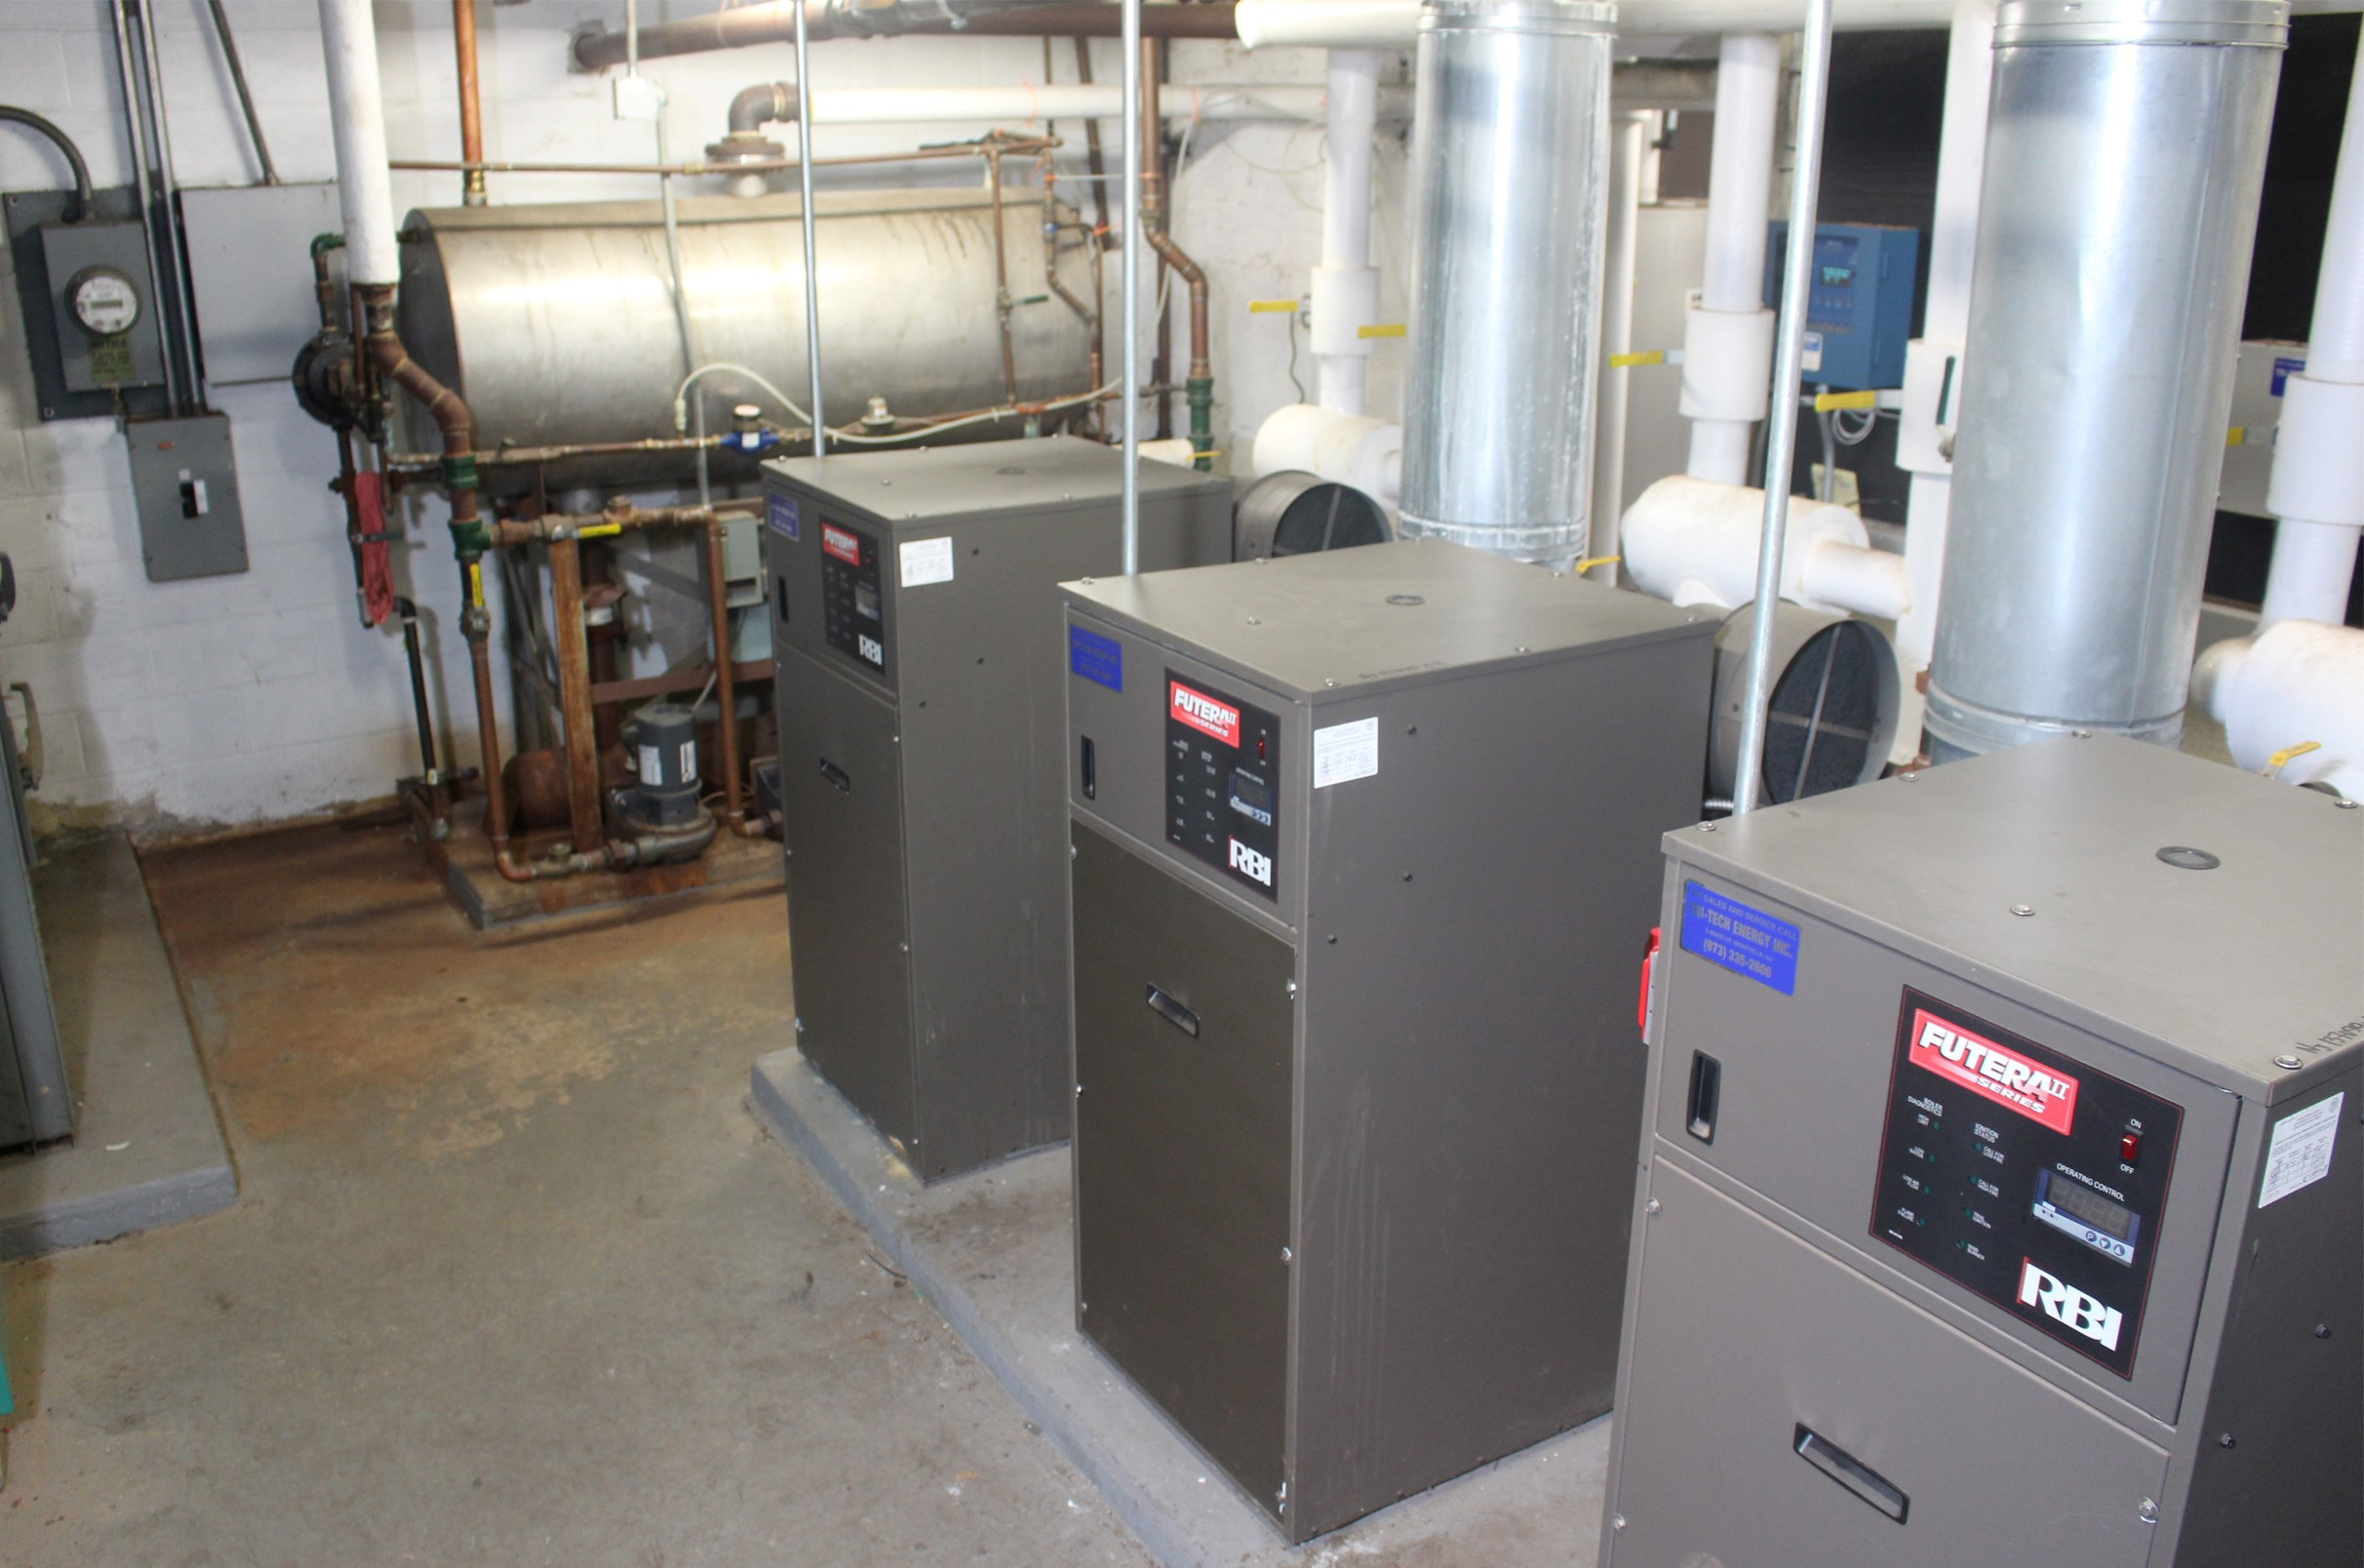 Commercial Boiler Systems – A Safety Guide from NJ Contractors